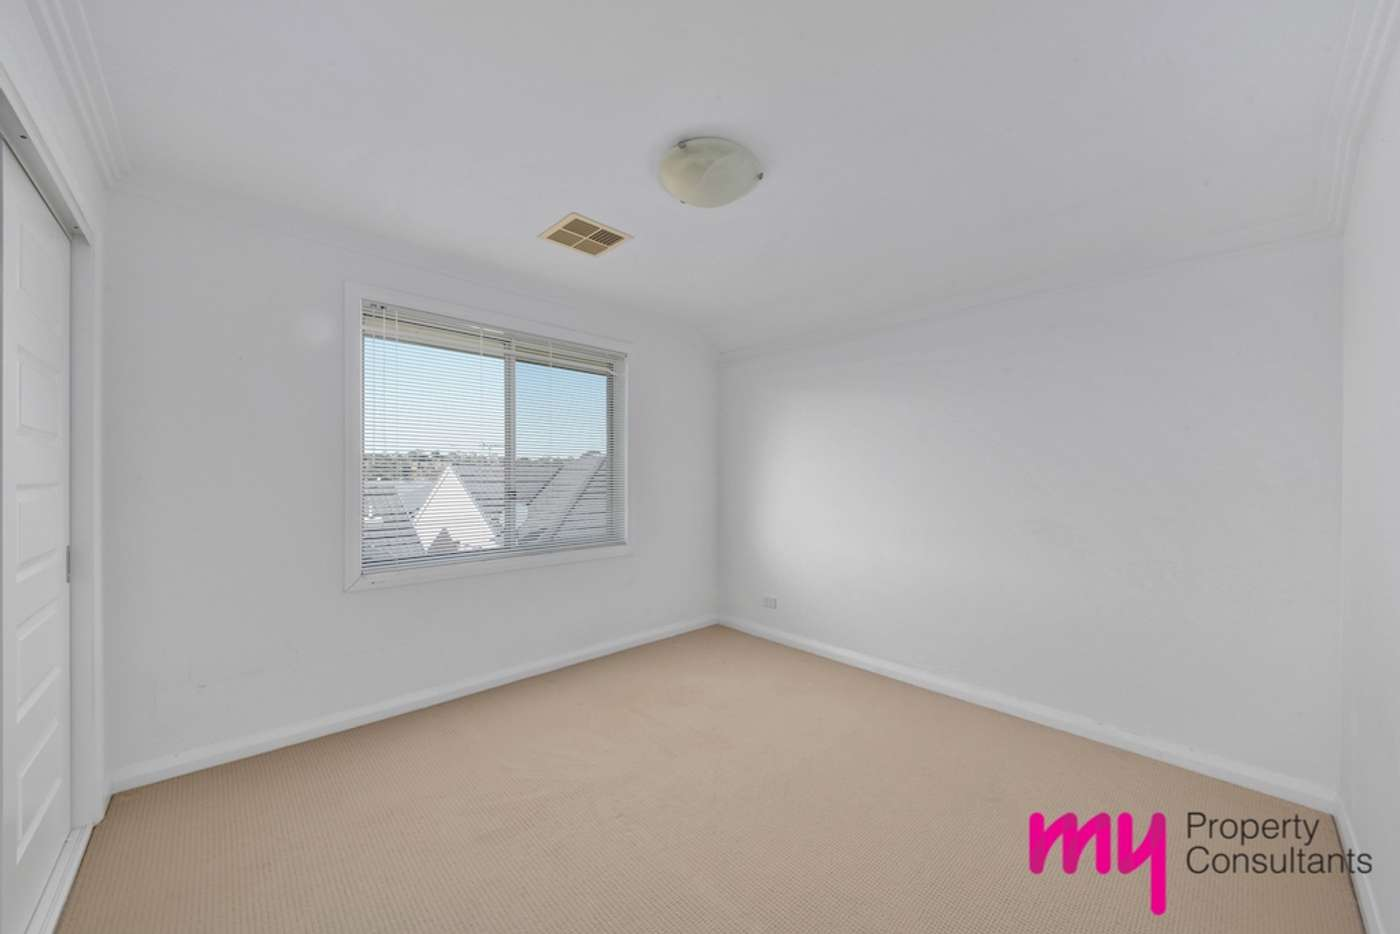 Sixth view of Homely house listing, 33 Santana Road, Campbelltown NSW 2560